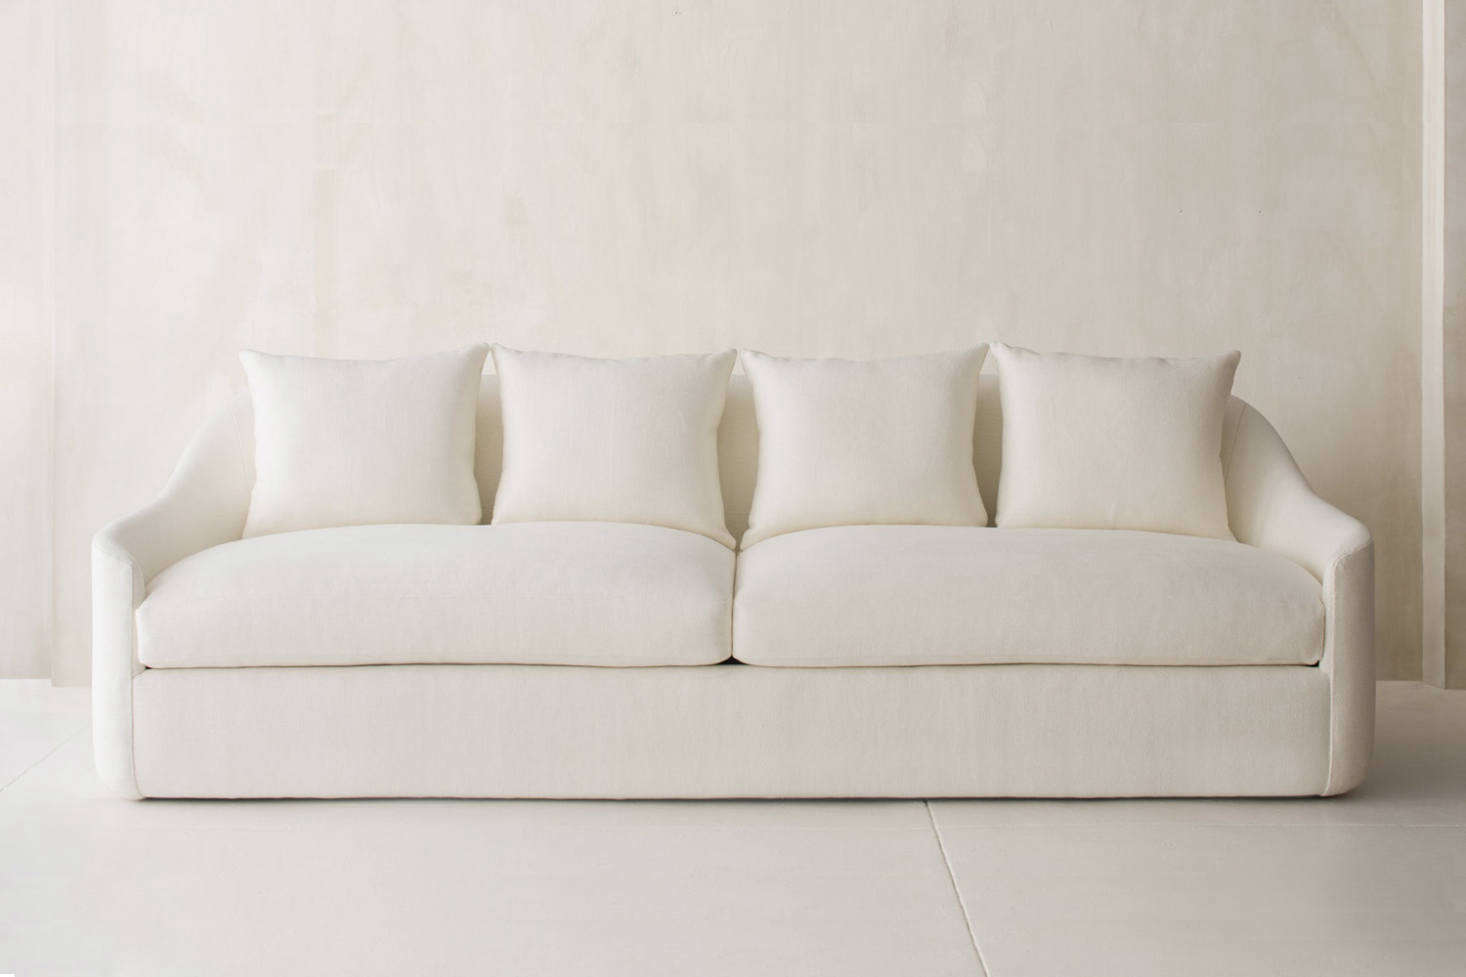 10 Easy Pieces: The Perfect High-End Luxury Sofa